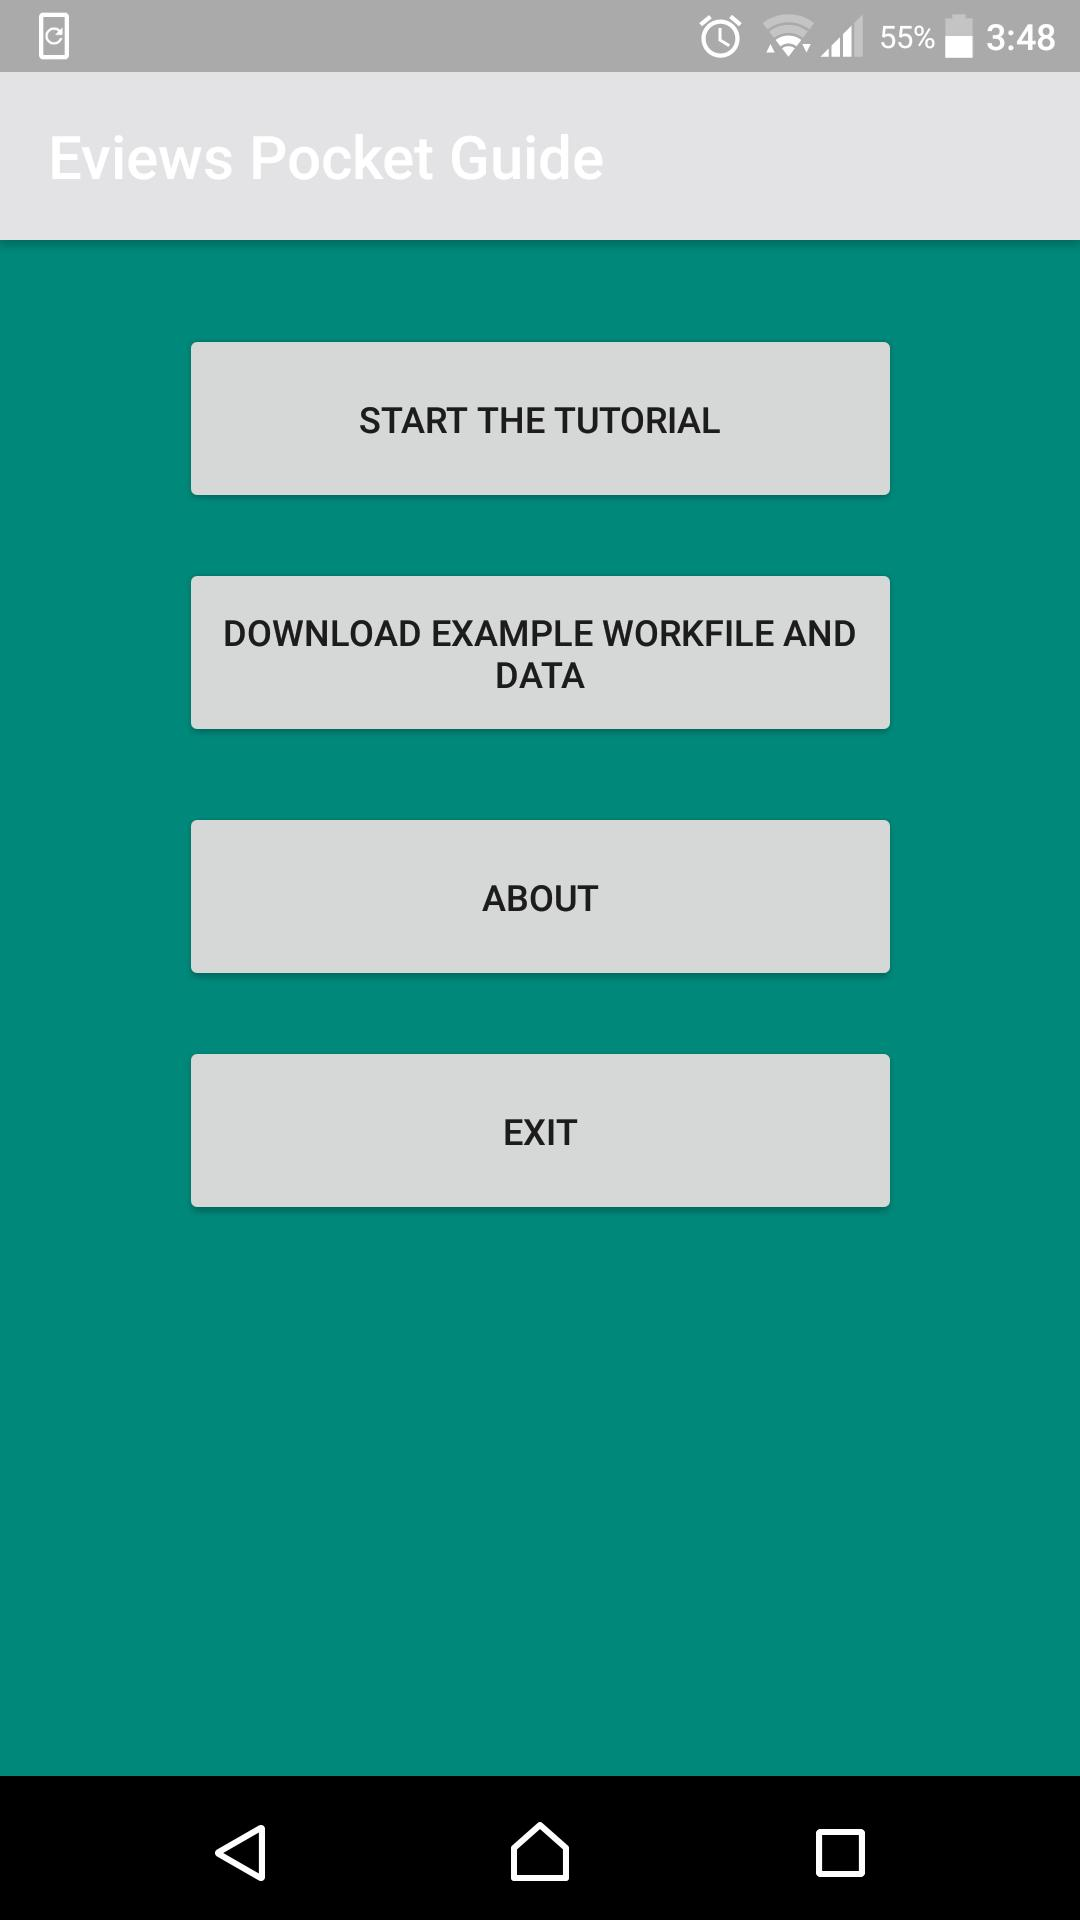 Eviews 10 Pocket Guide for Android - APK Download